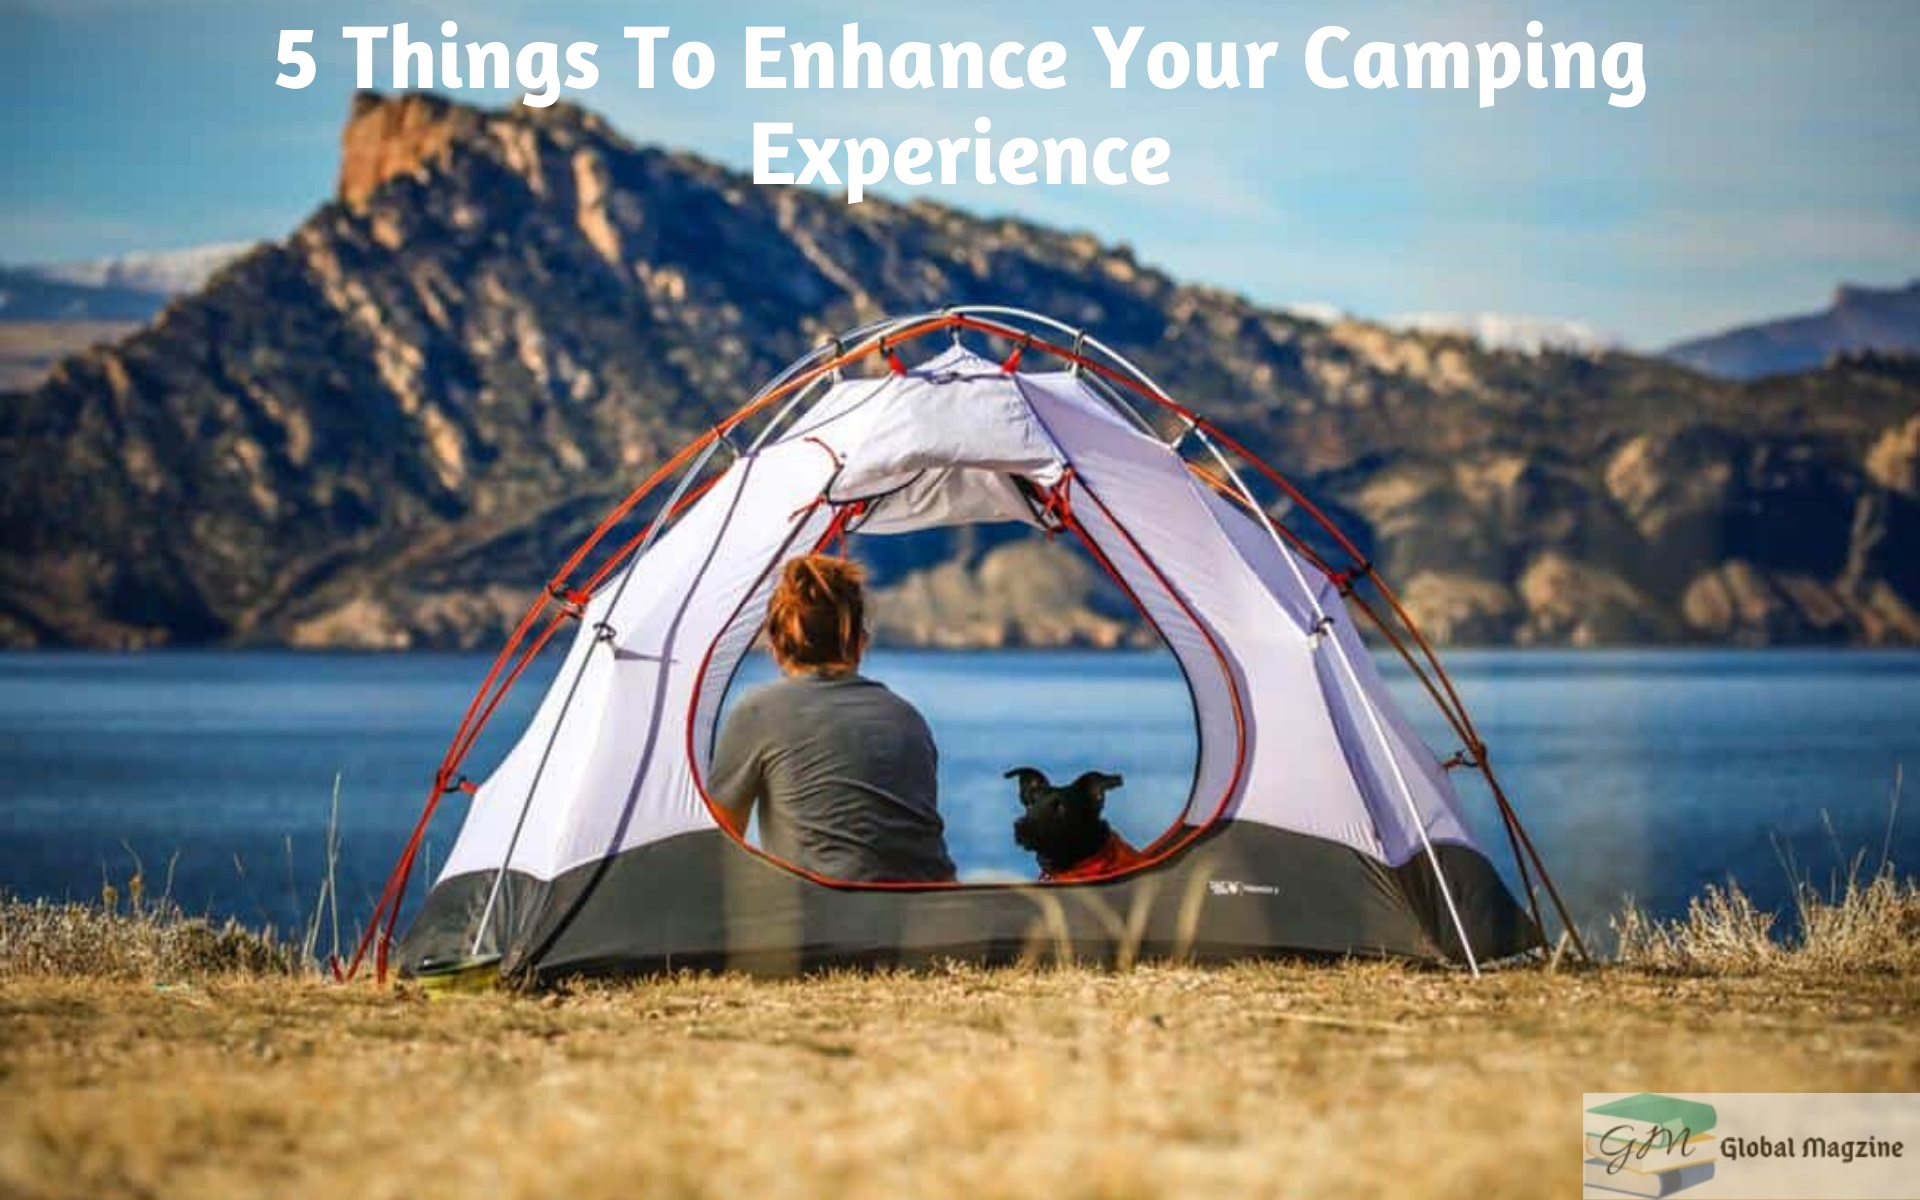 5 Things To Enhance Your Camping Experience